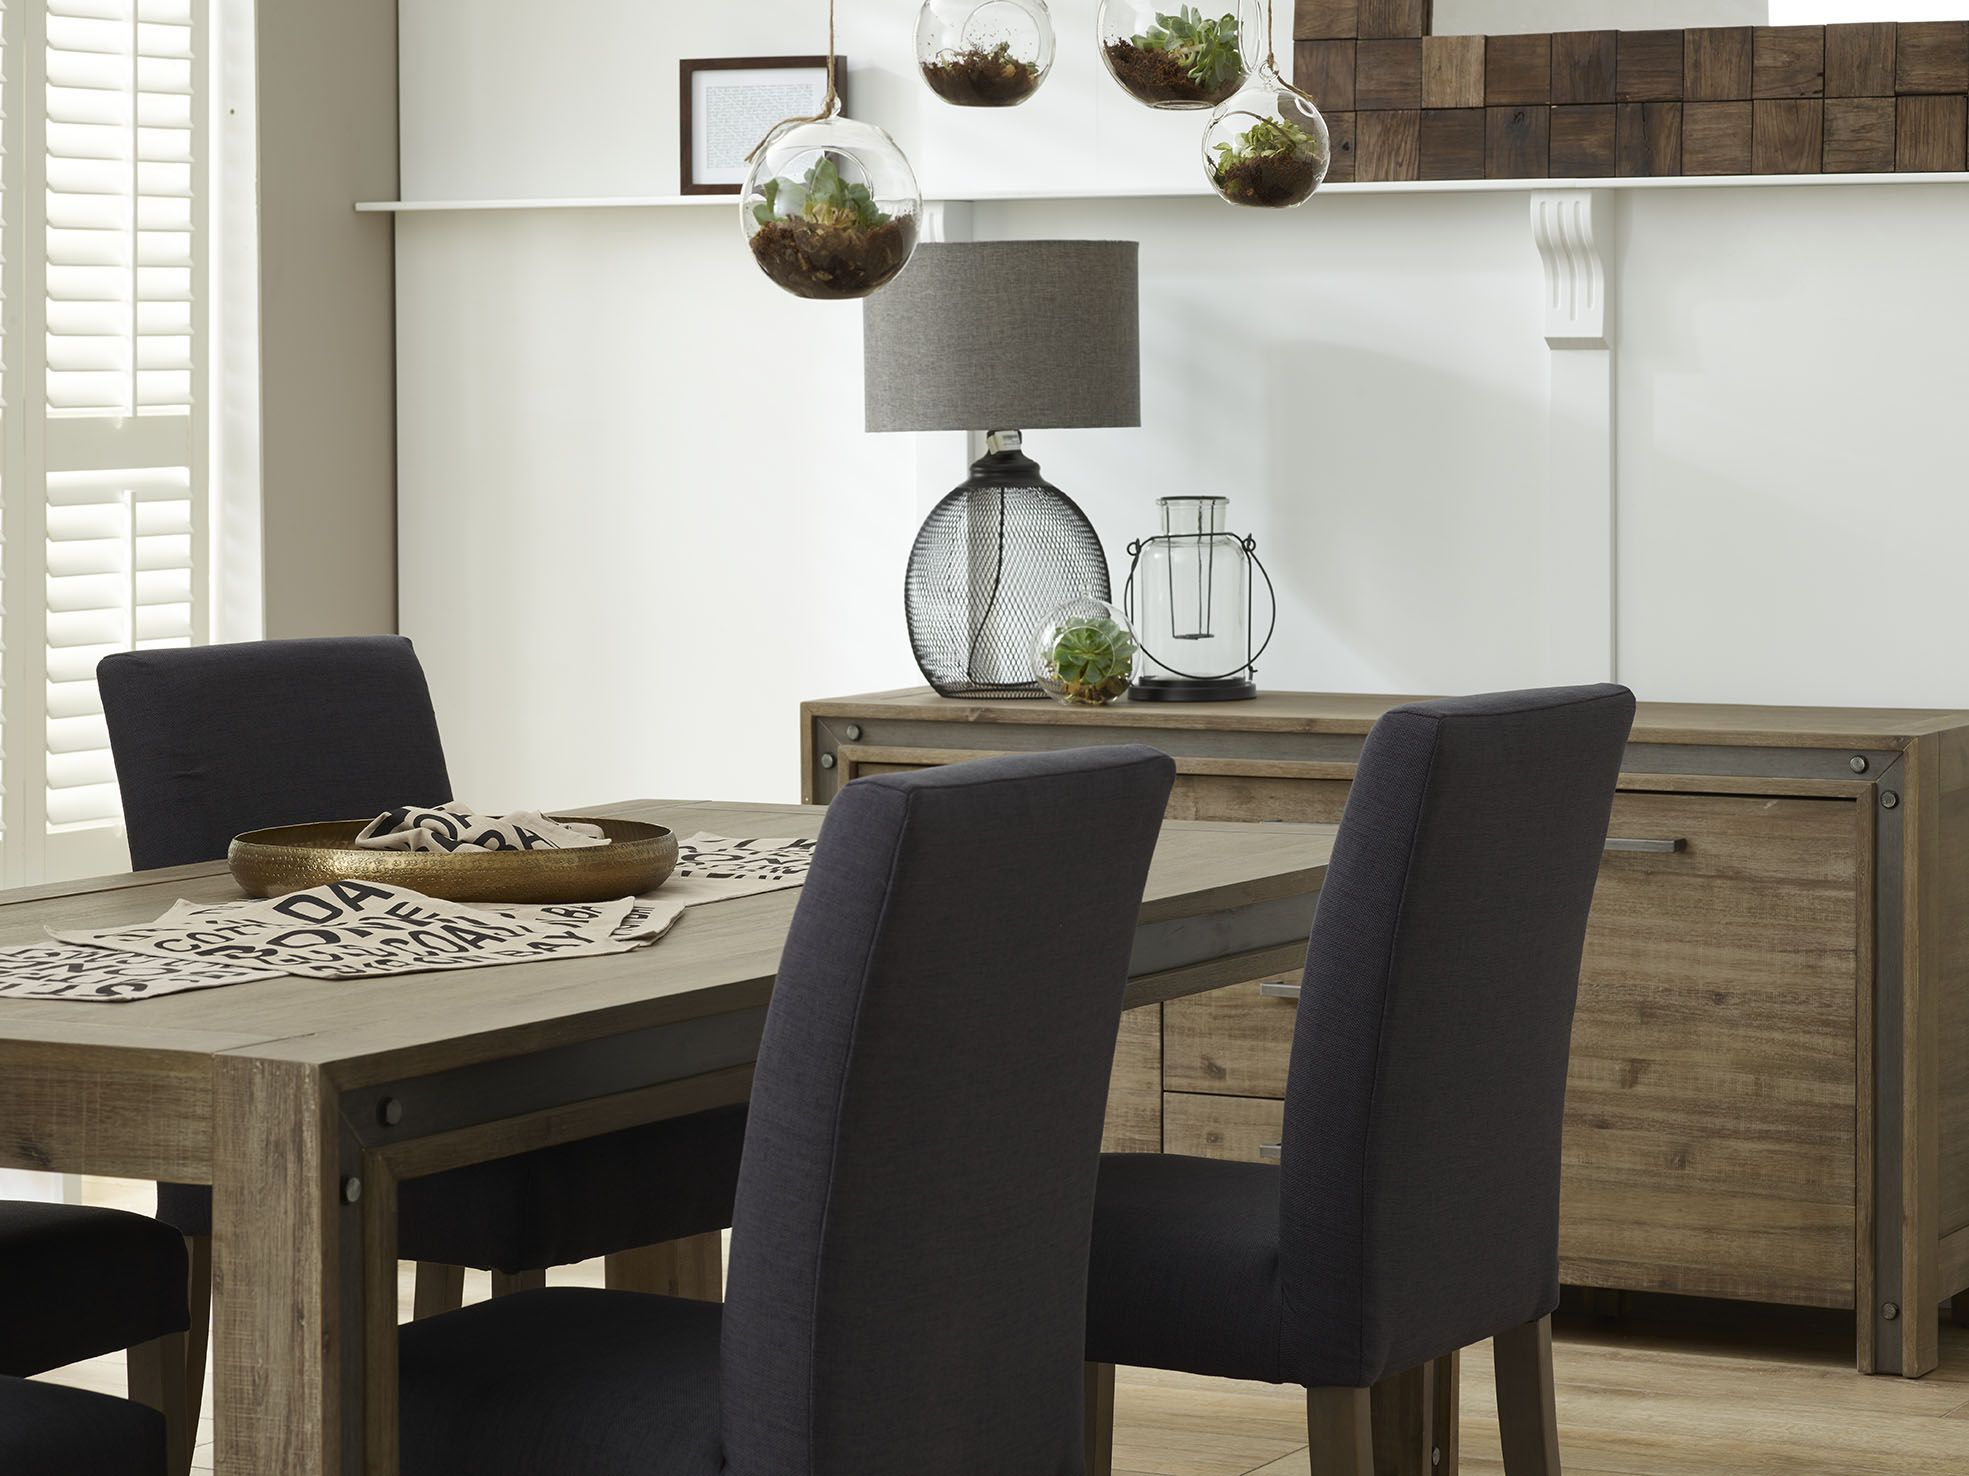 focus on furniture's lexington dining table and buffet, with